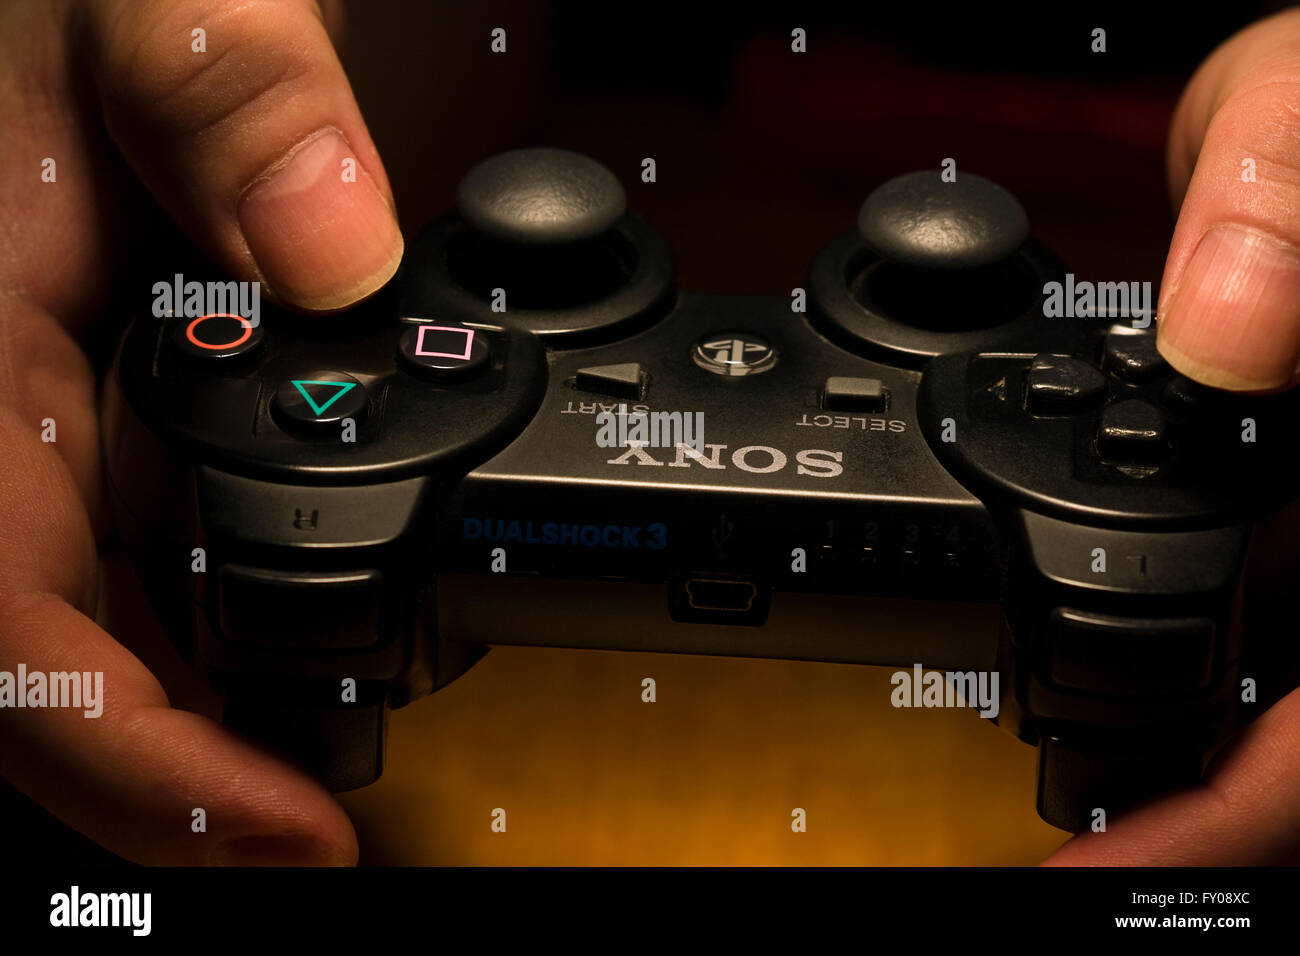 Two hands holding a wireless SONY Playstation Dual Shock 3 Controller - Stock Image